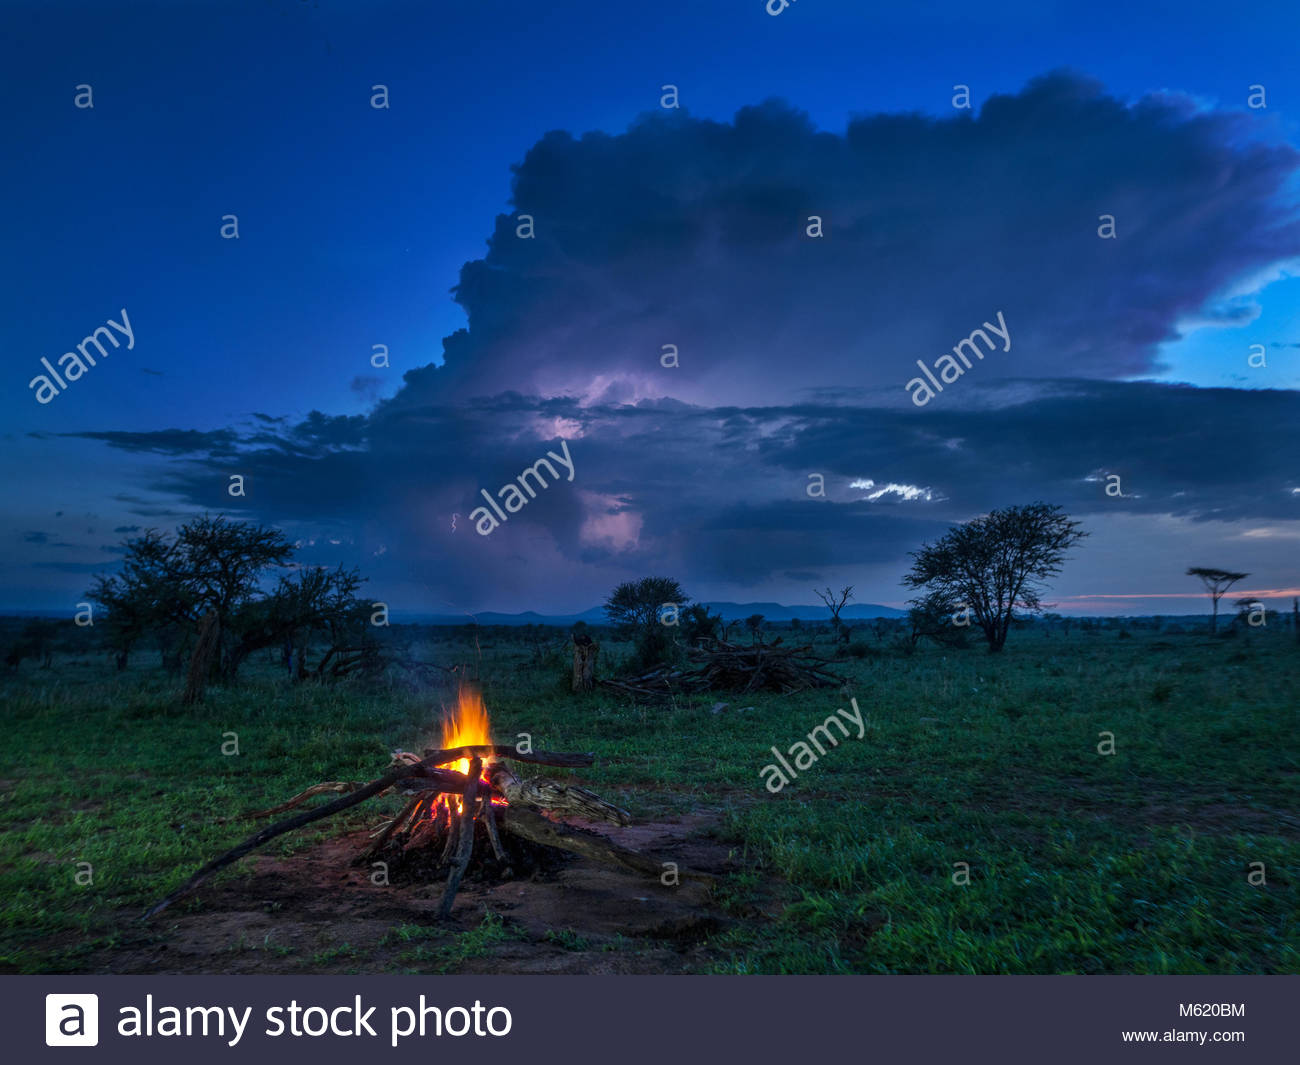 A campfire burns in early evening with storm behind. - Stock Image